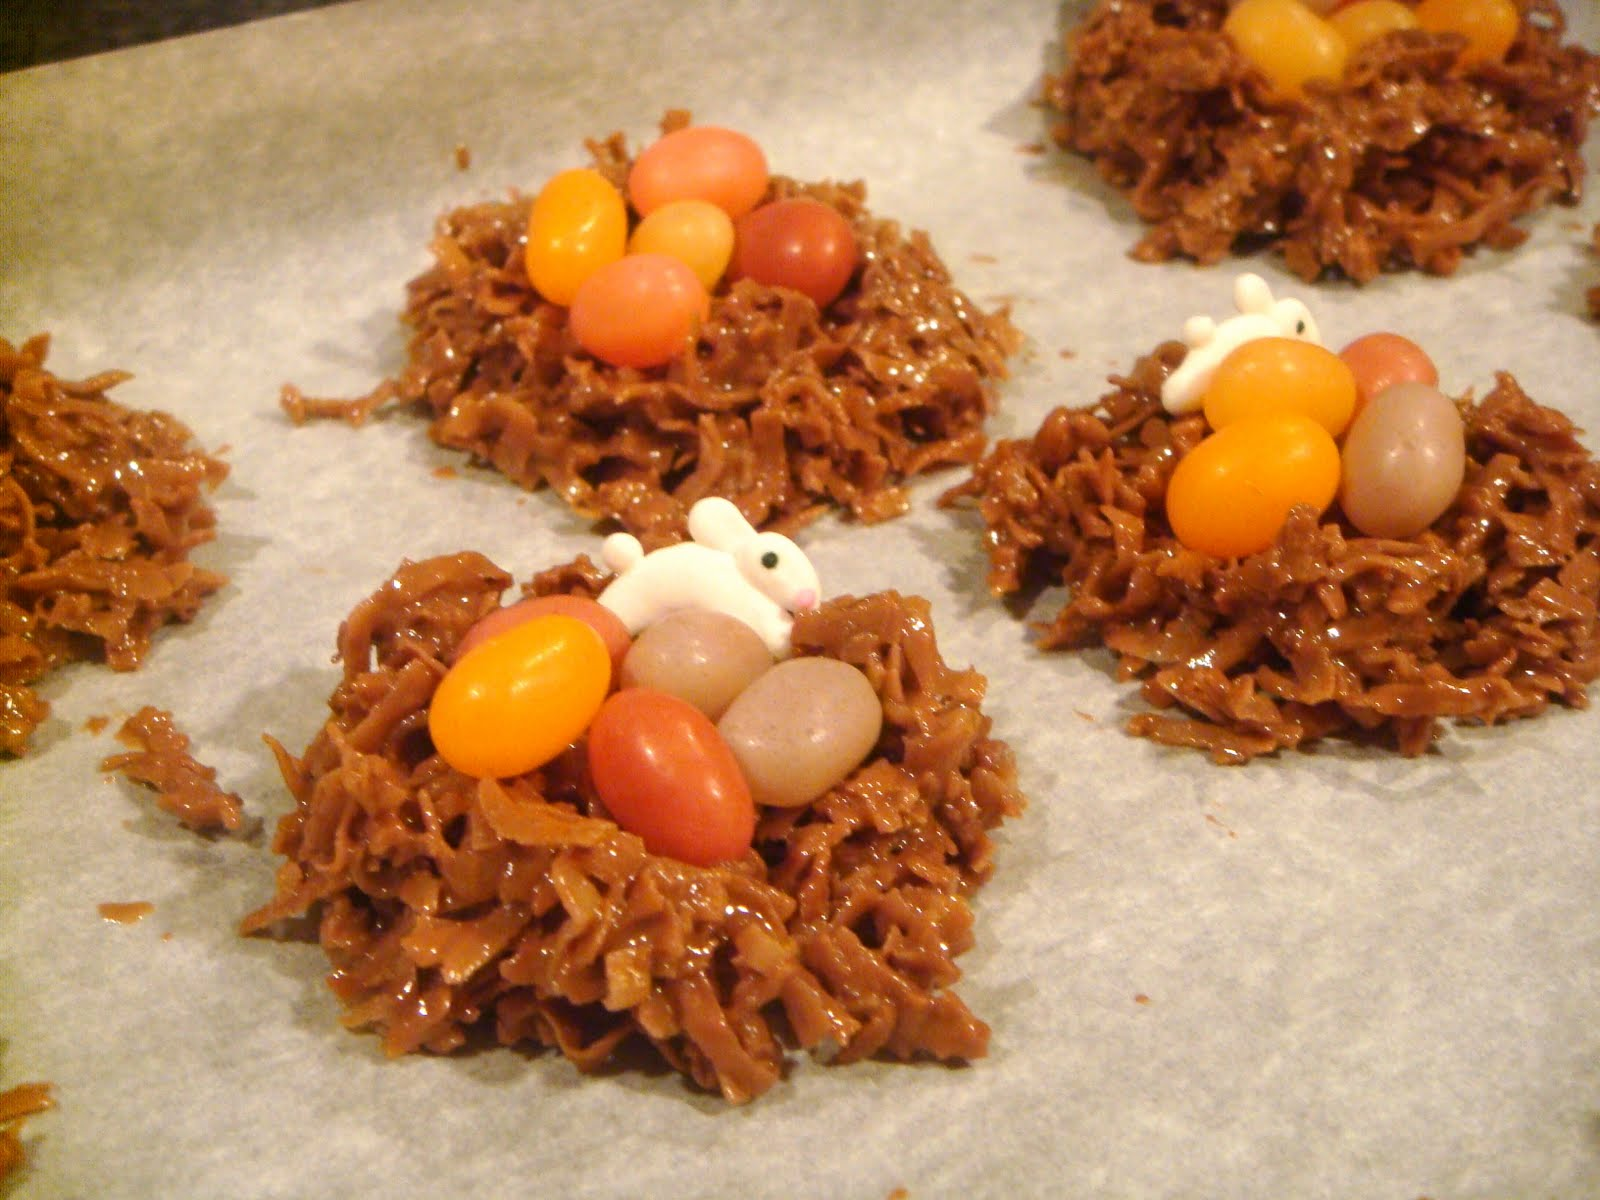 Chocolate Coconut Nests With Jelly Bean Eggs Recipe — Dishmaps